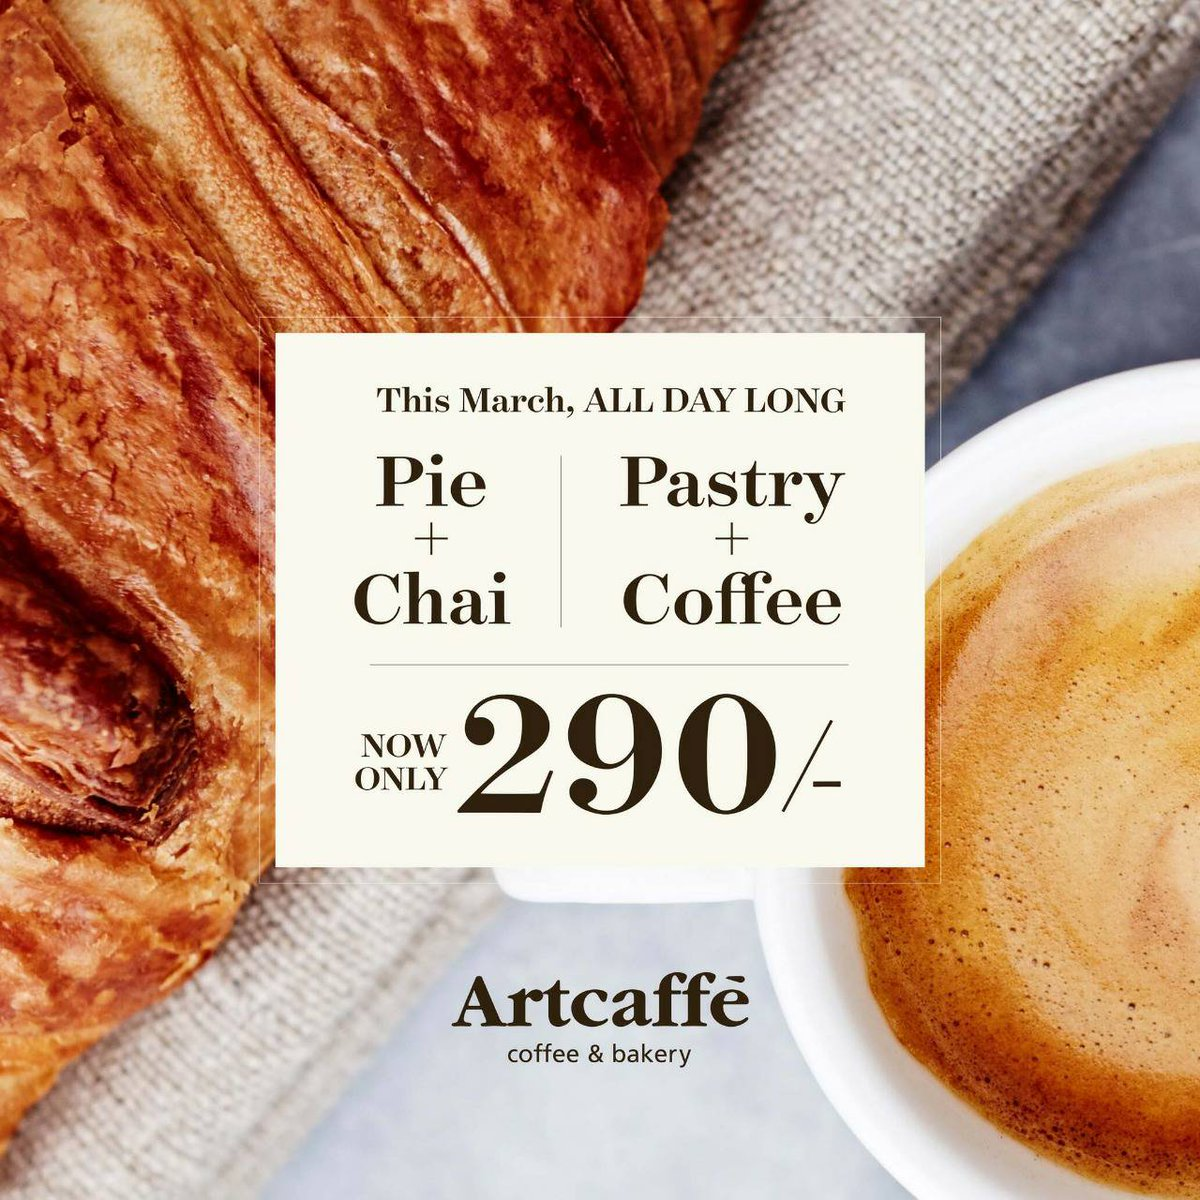 When breakfast calls, you pick the 📱. Enjoy a pie or pastry with coffee or tea for just 290/- this March, all day long.   #WestgateExperience https://t.co/vd6HQuLeWu